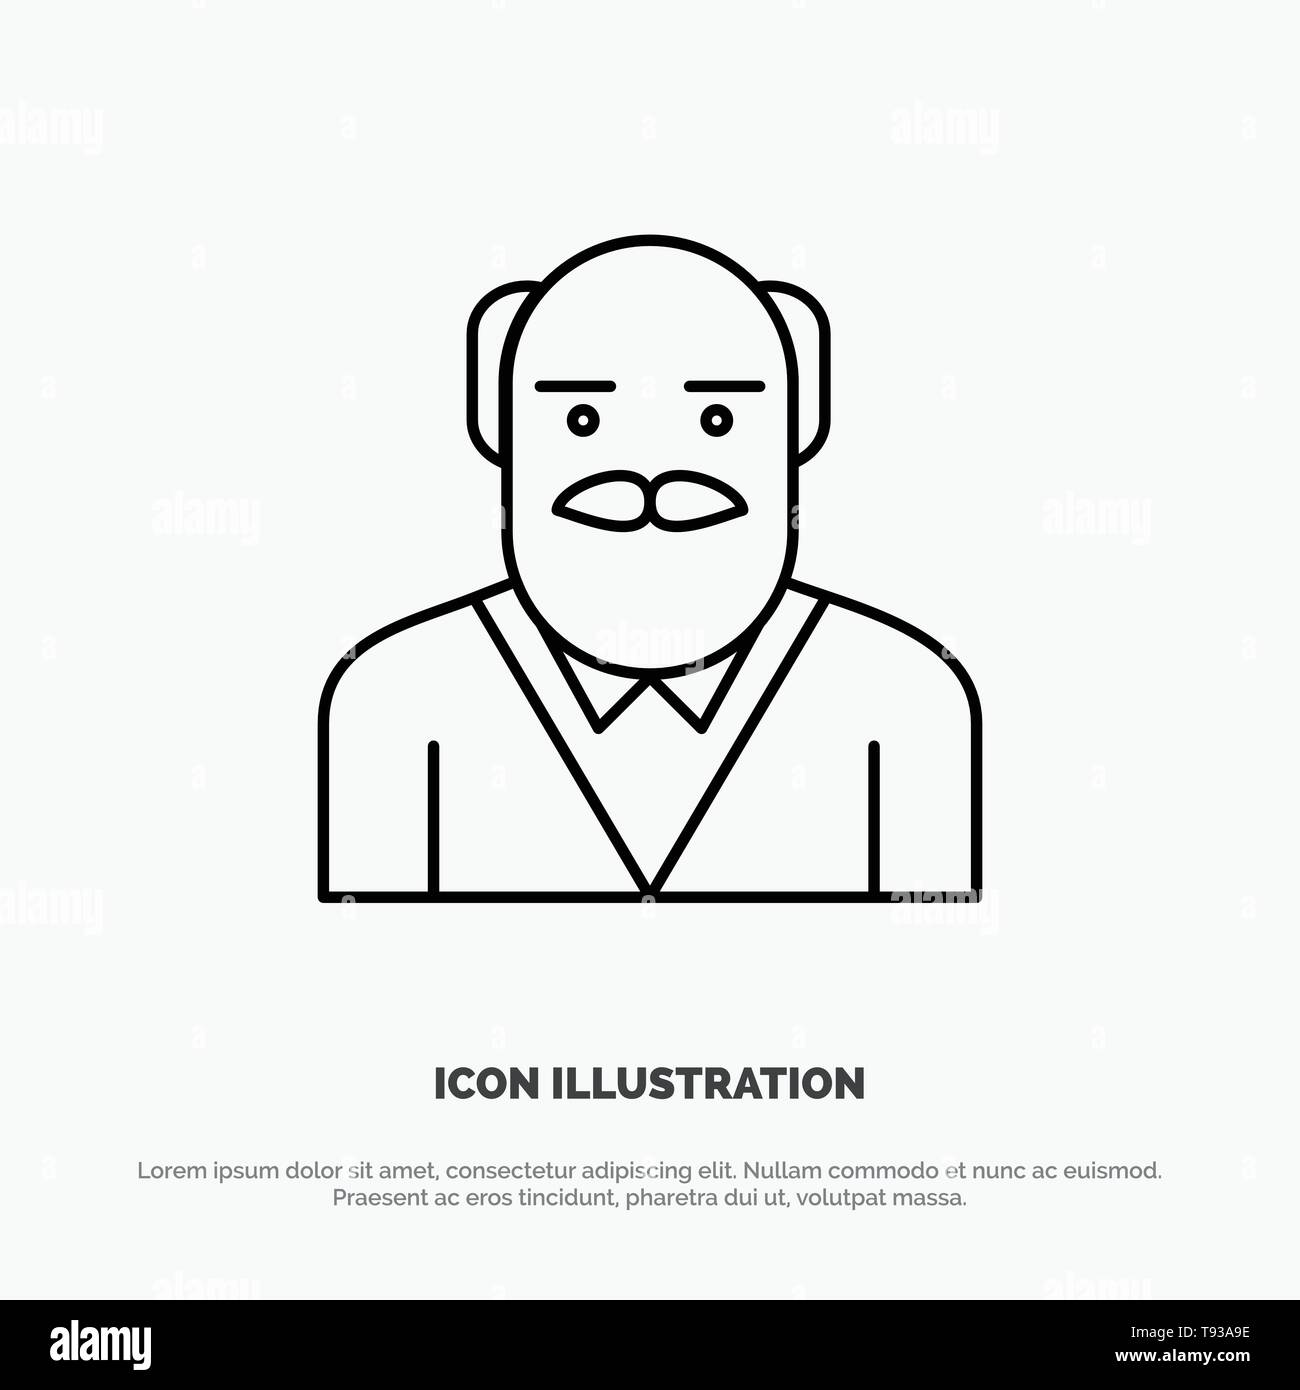 Grandpa, Father, Old Man, Uncle Line Icon Vector - Stock Image